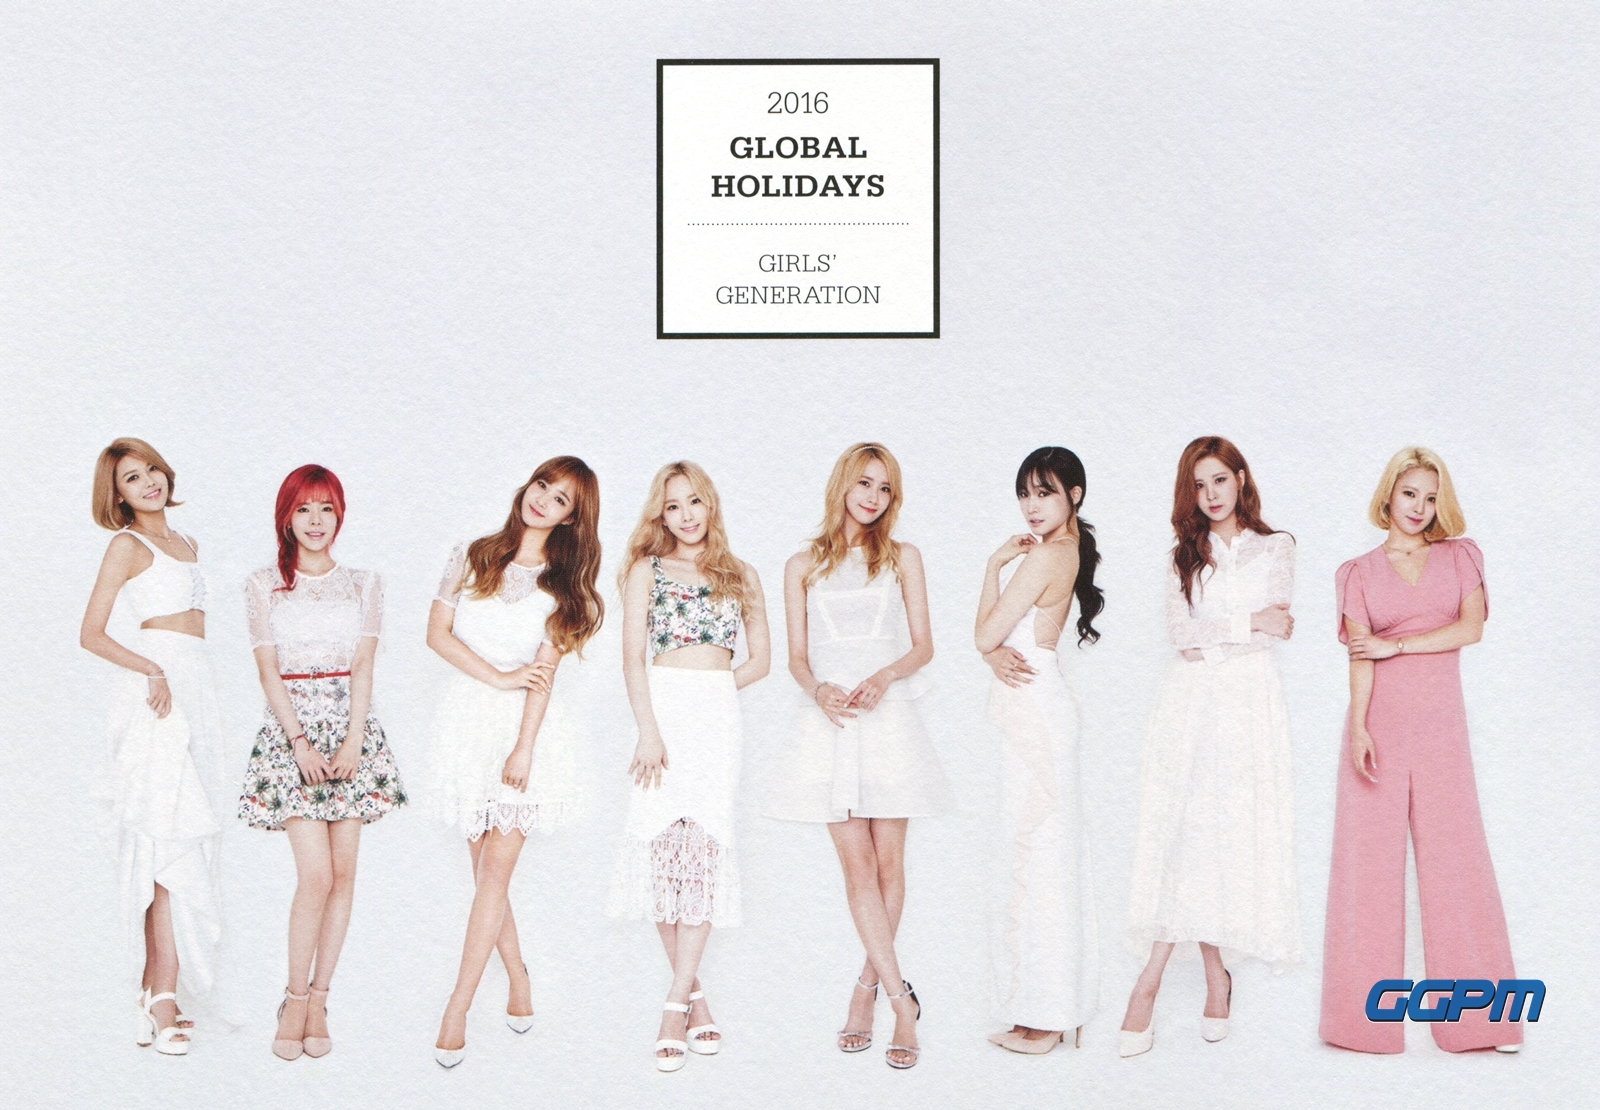 Check Out The Scans From Snsds 2016 Seasons Greetings Calendar